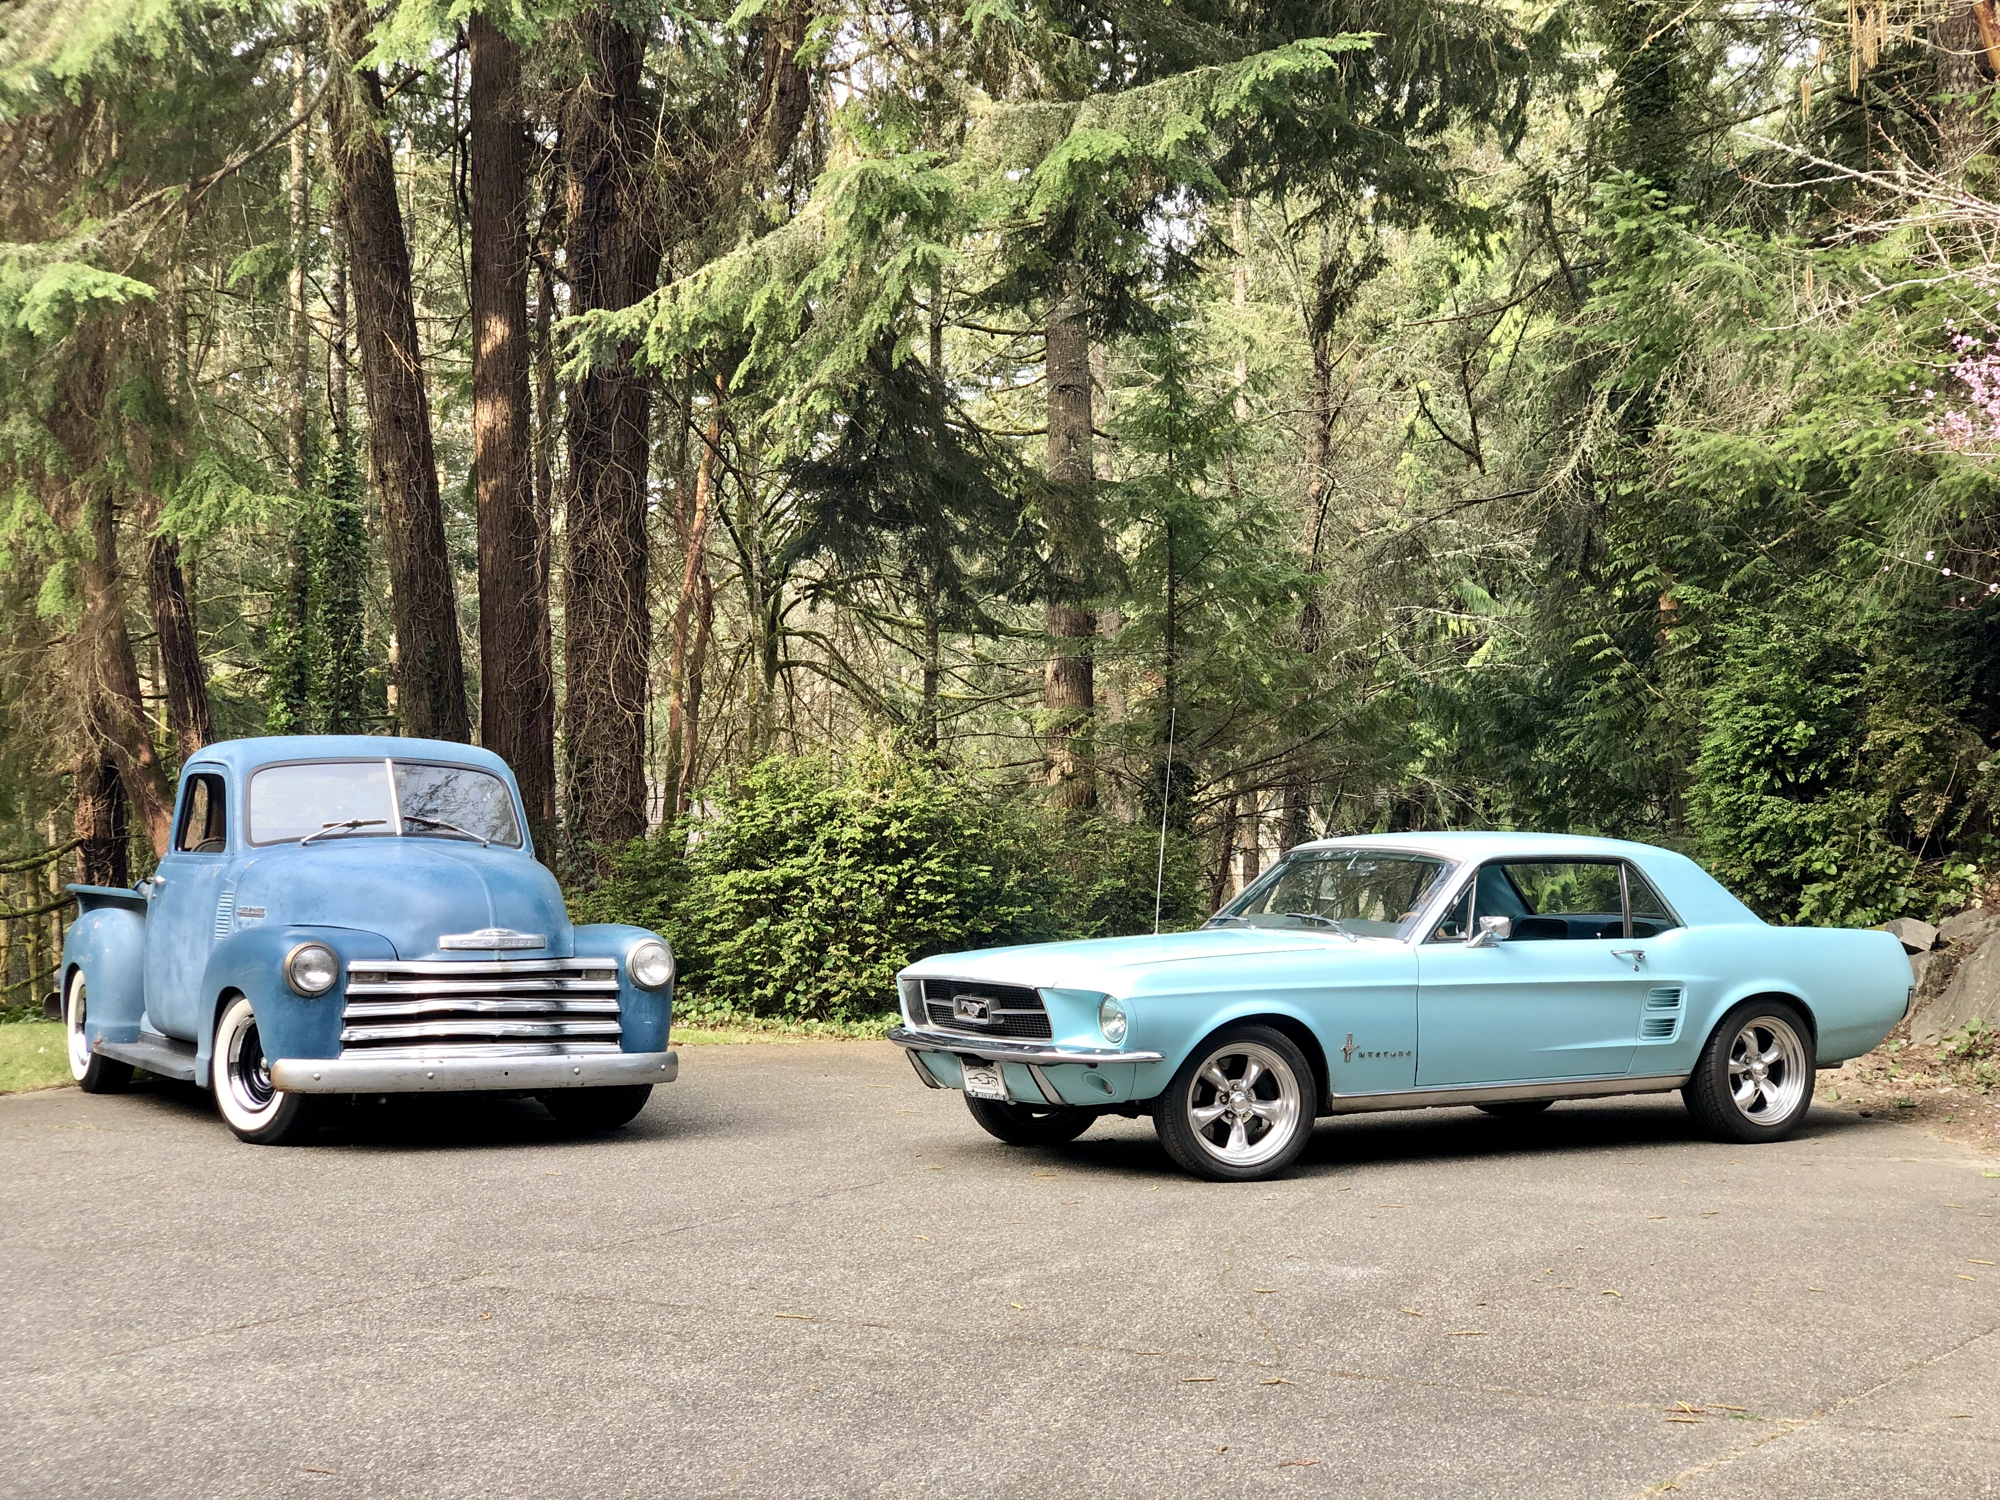 Ford Mustang and chevy 3100